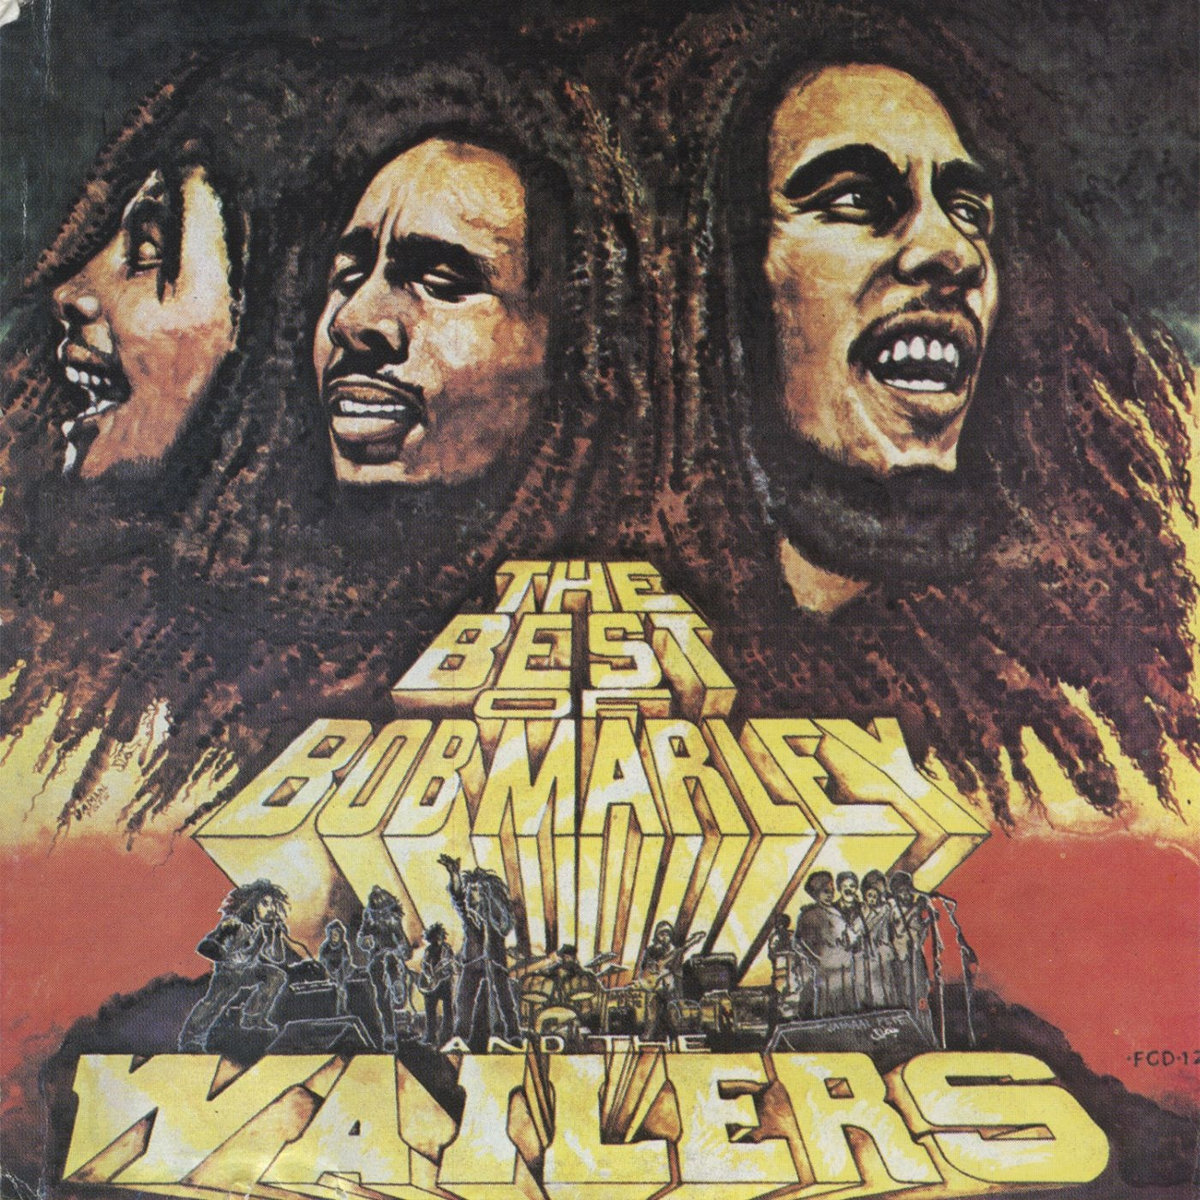 Bob Marley Cry Song Mp3 Download: The Best Of Bob Marley & The Wailers